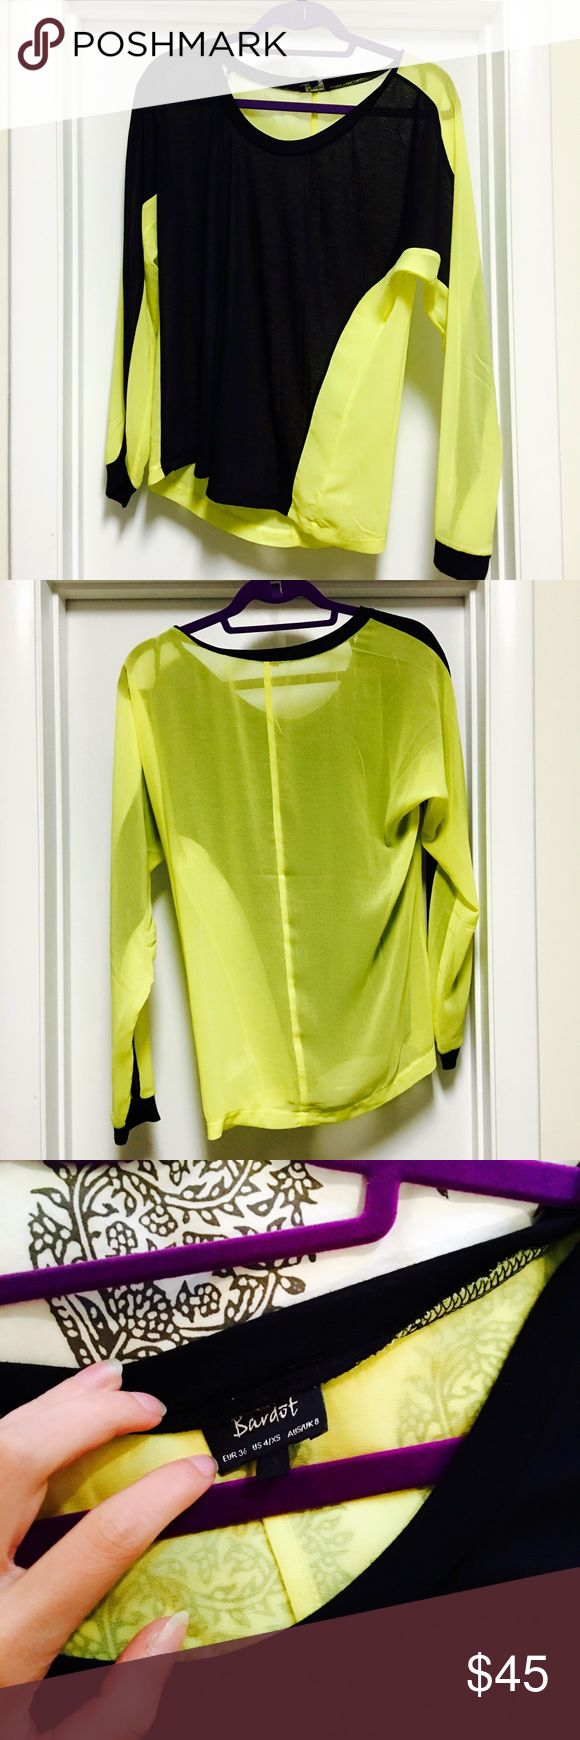 Bardot Long Sleeve Colorblocked long sleeve tee with neon yellow and black. Looks really cool on and is unique. Never worn. Bardot Tops Tees - Long Sleeve